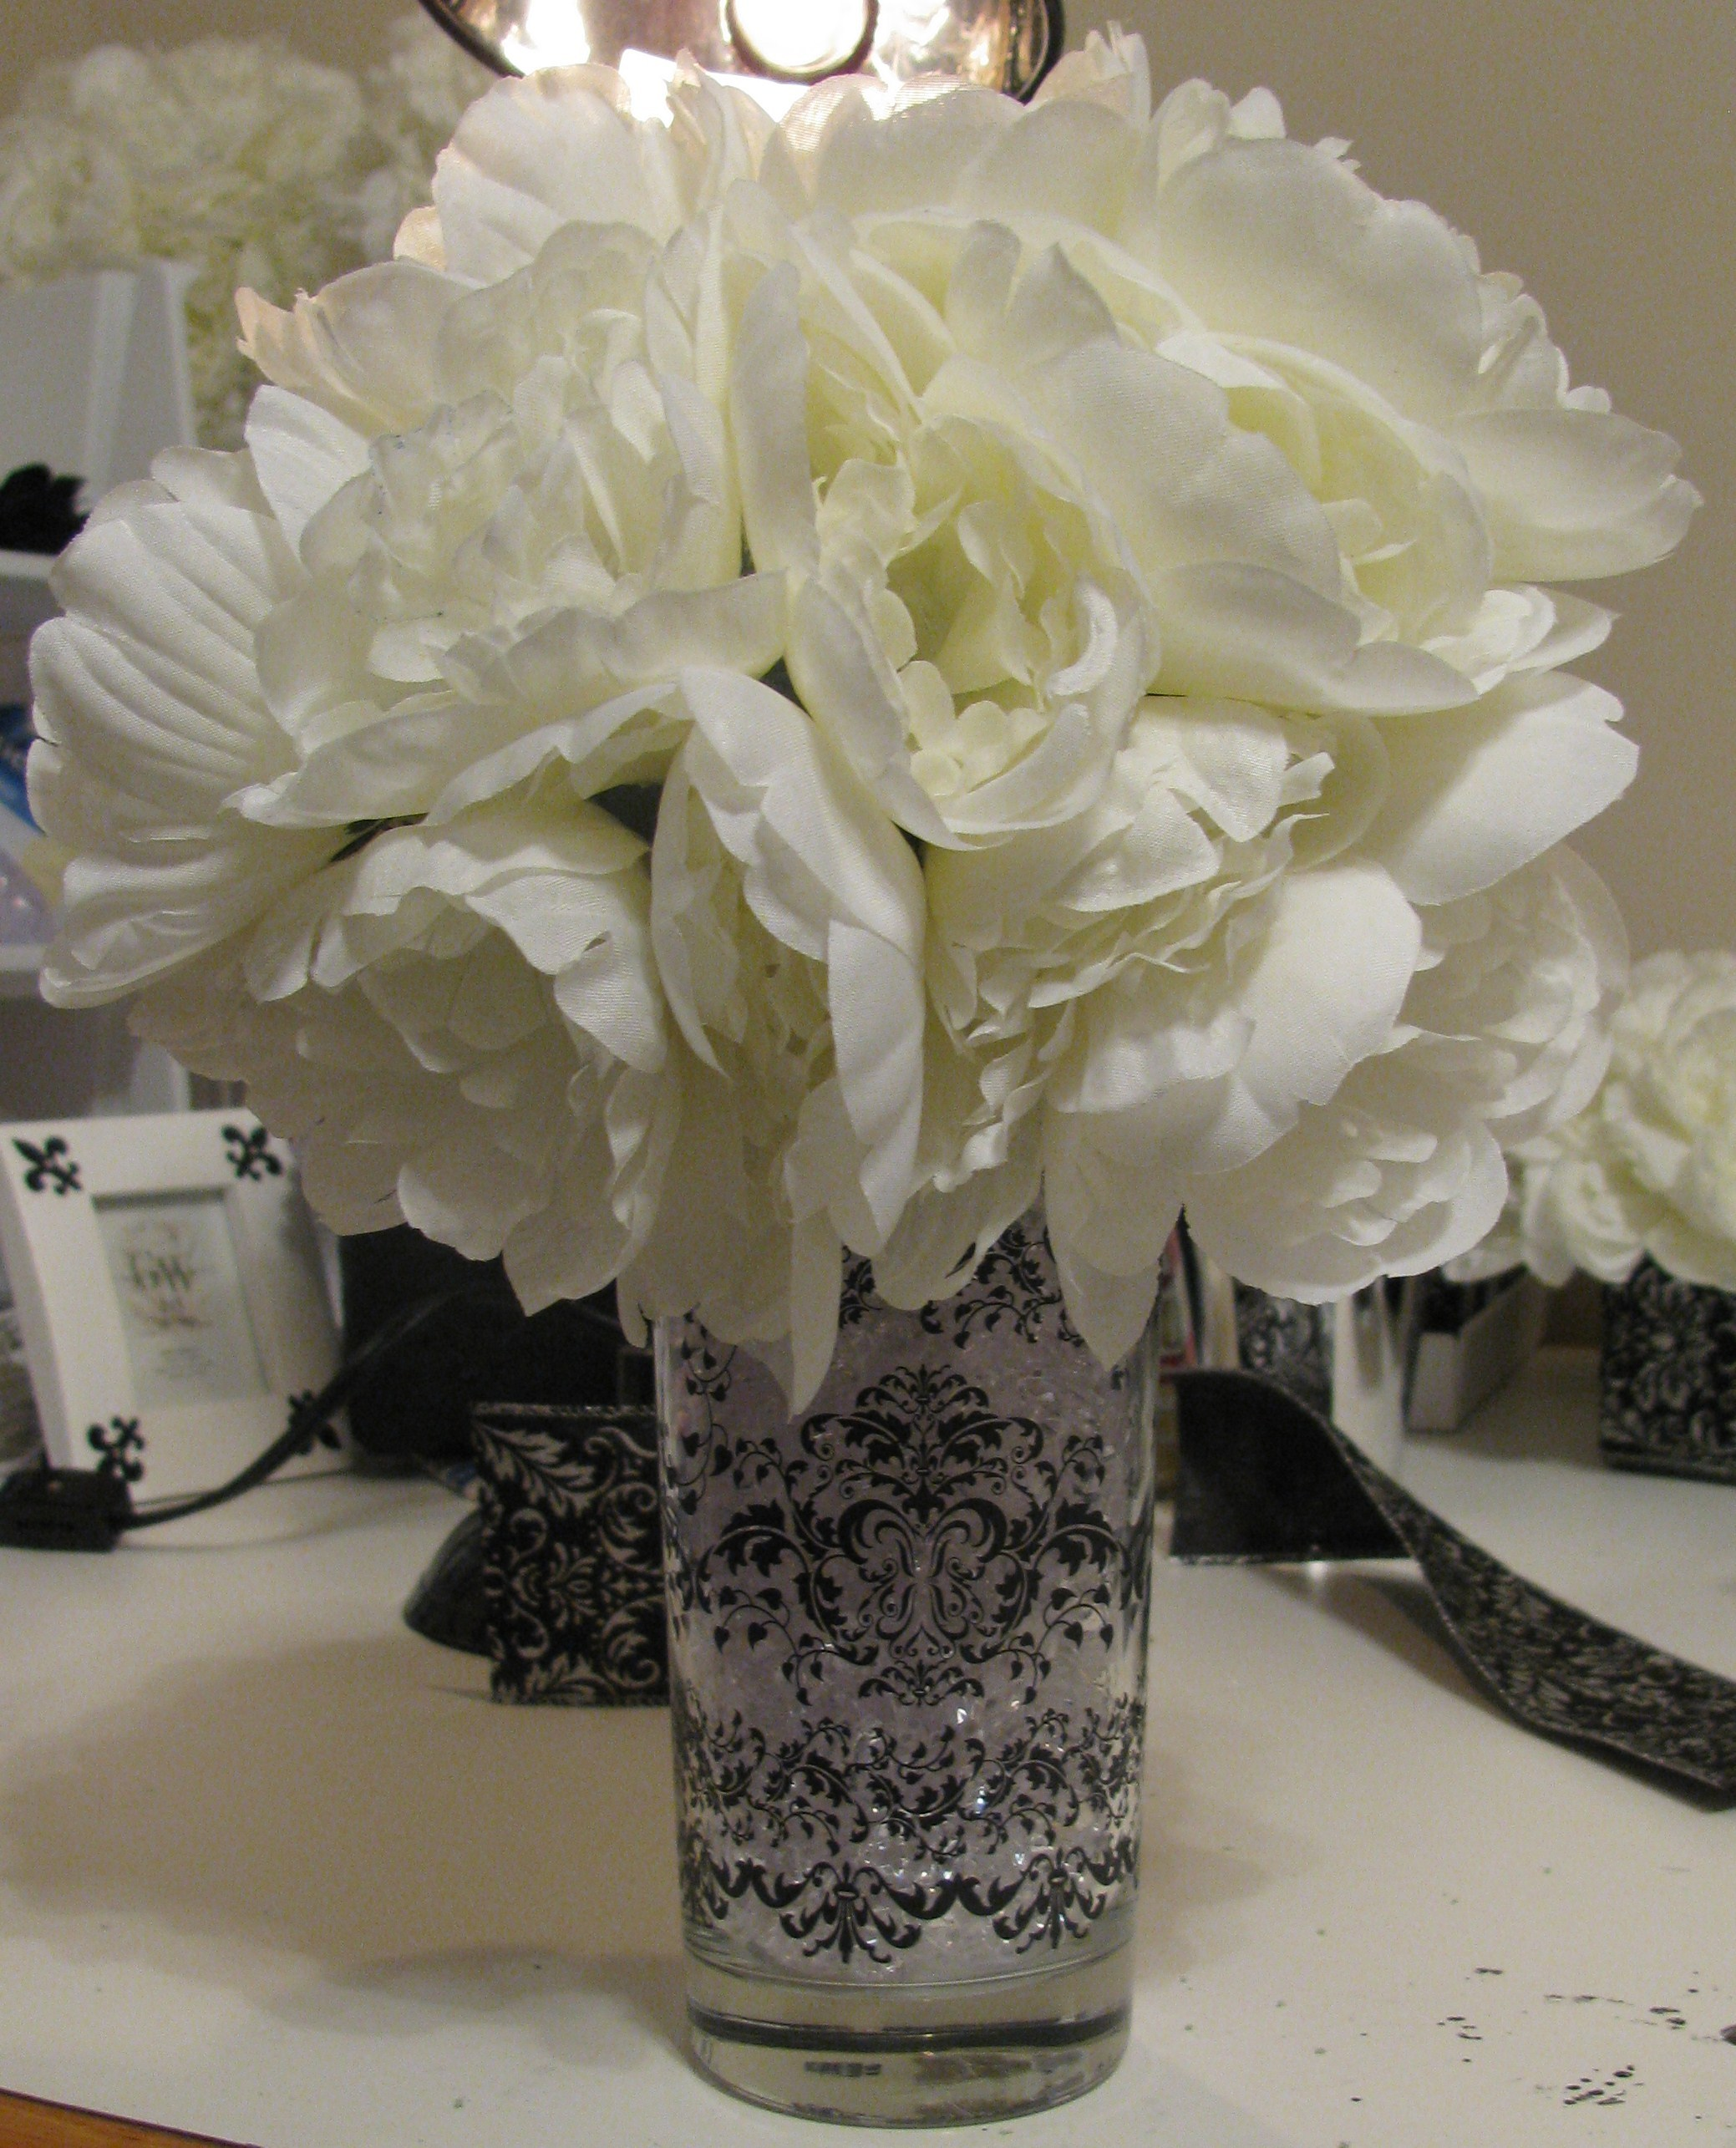 DIY, Flowers & Decor, Decor, black, silver, Centerpieces, Flowers, Centerpiece, Arrangement, Peonies, Damask, Peony